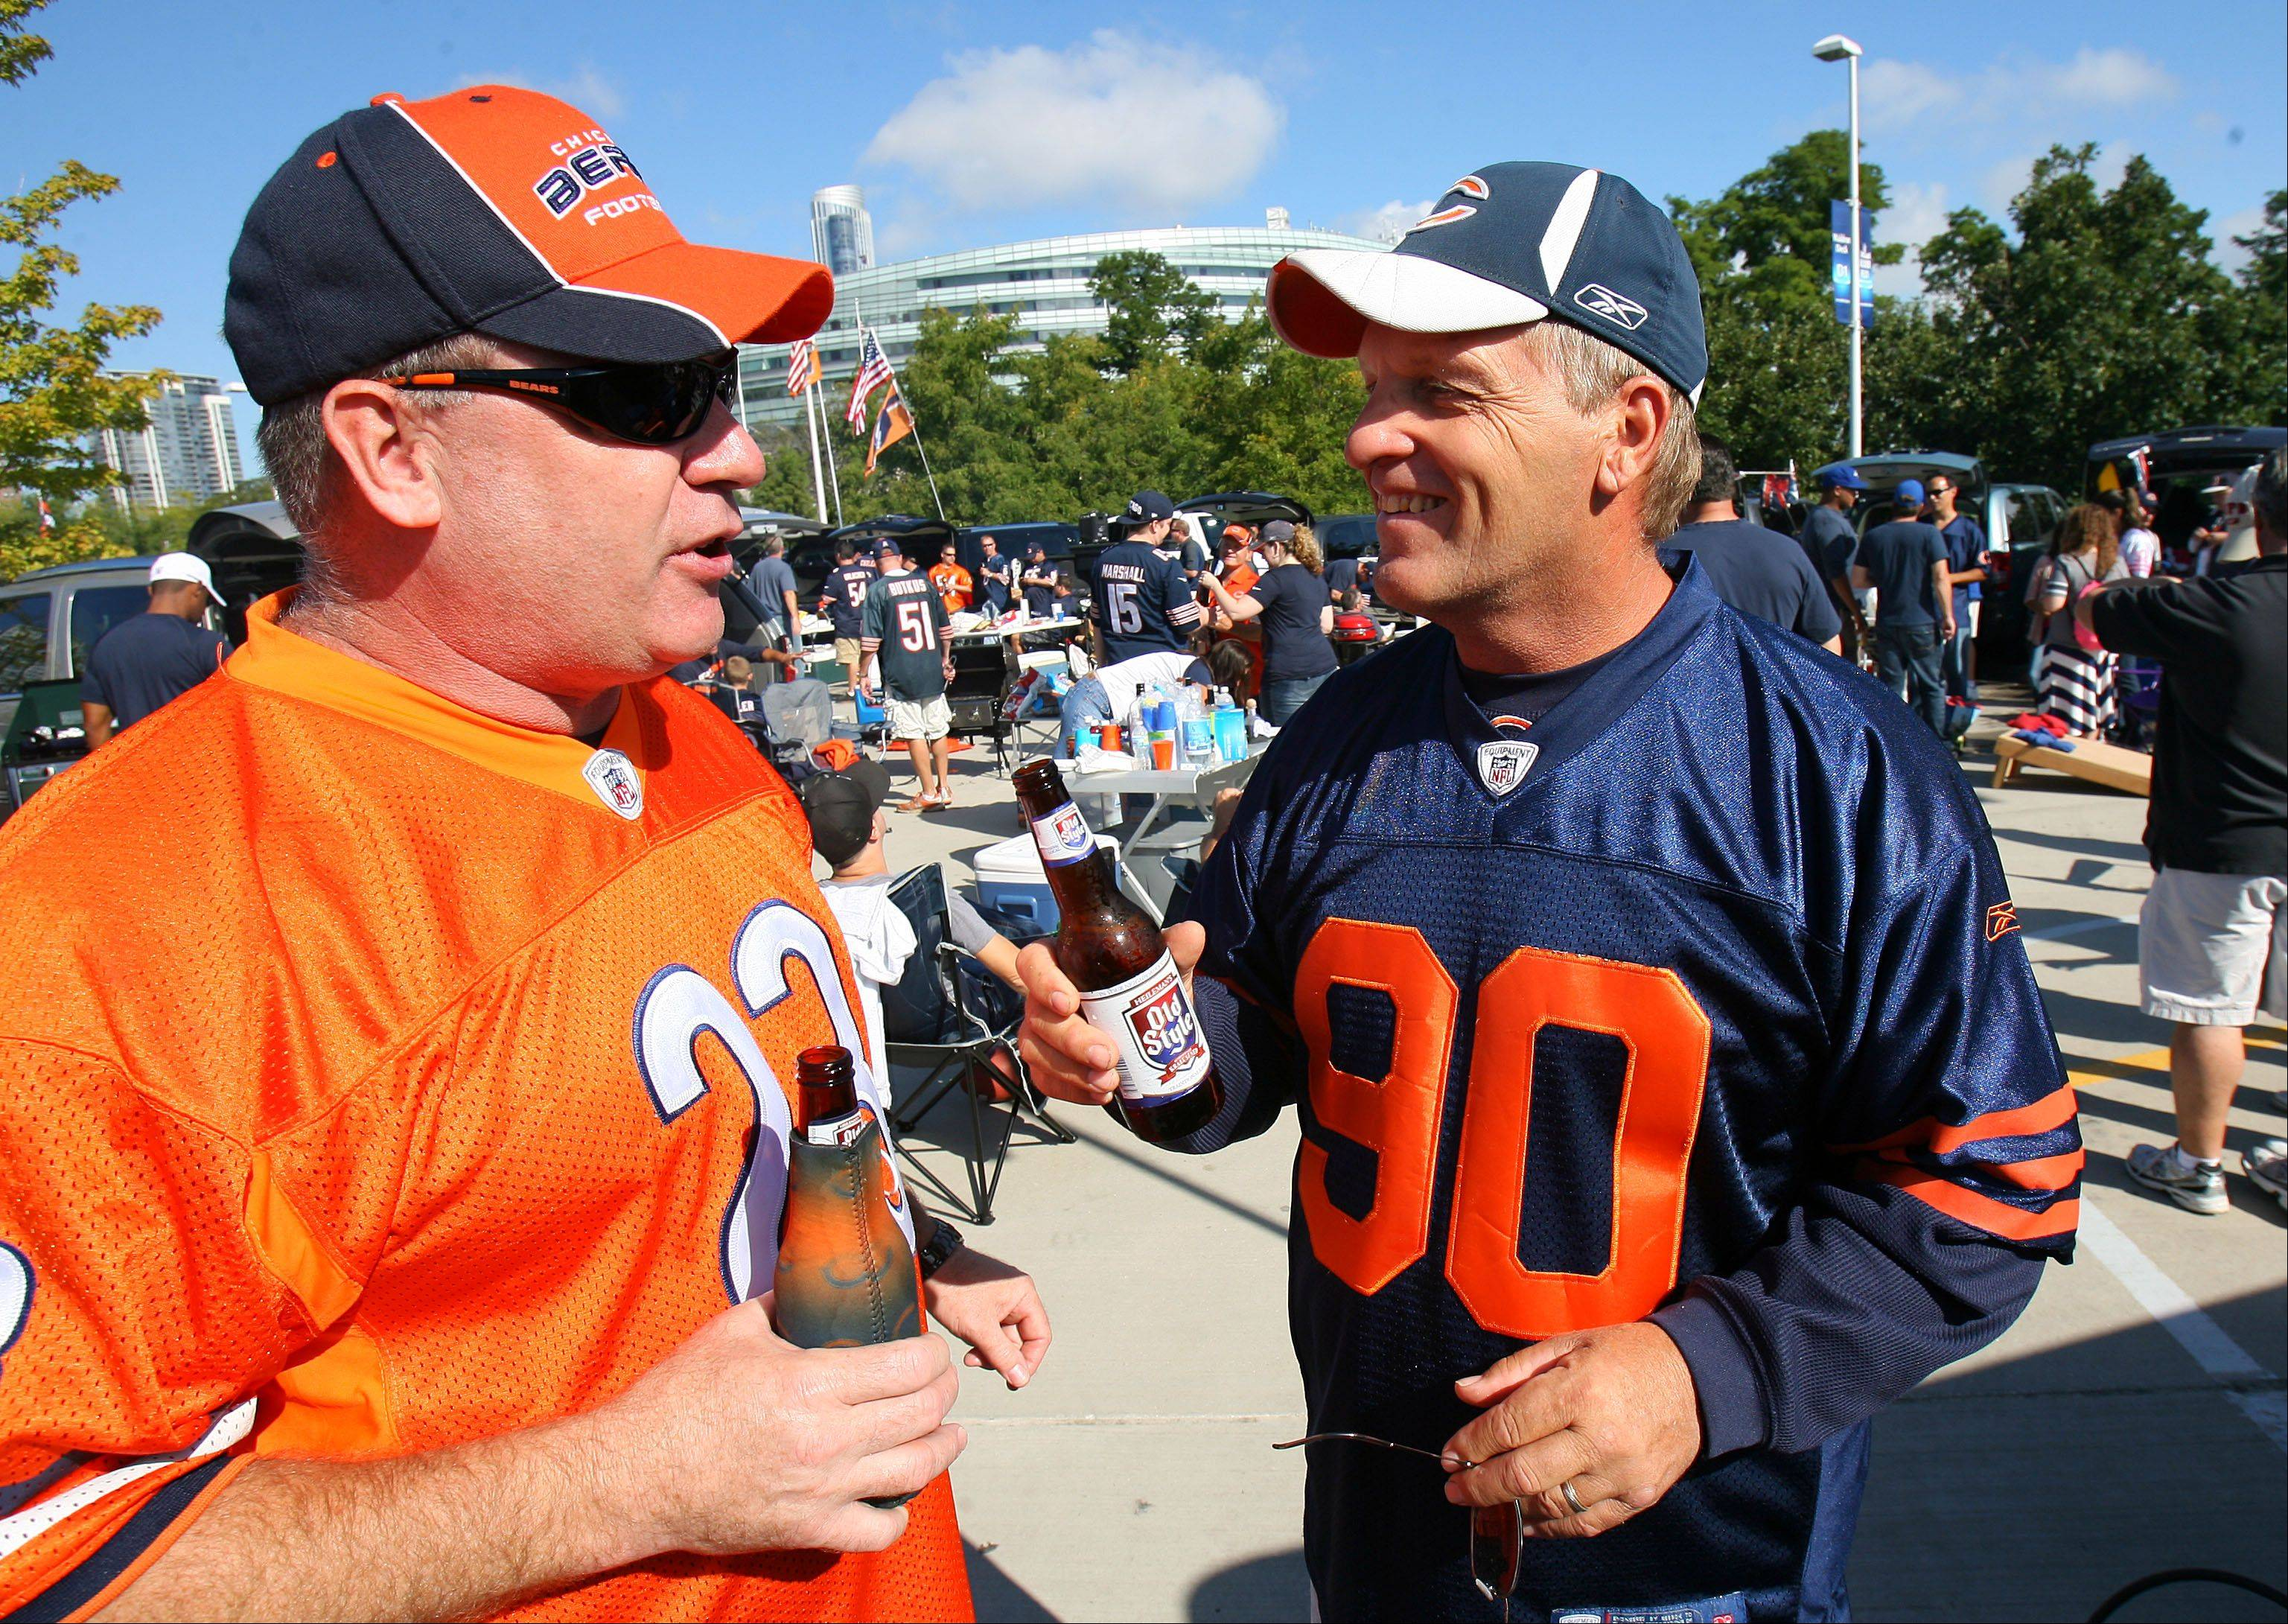 Terry Normoyle of St. Charles and Duane Schmitt of Burlington tailgate on the Waldron Deck before the Bears season opener against the Indianapolis Colts Sunday at Soldier Field in Chicago.